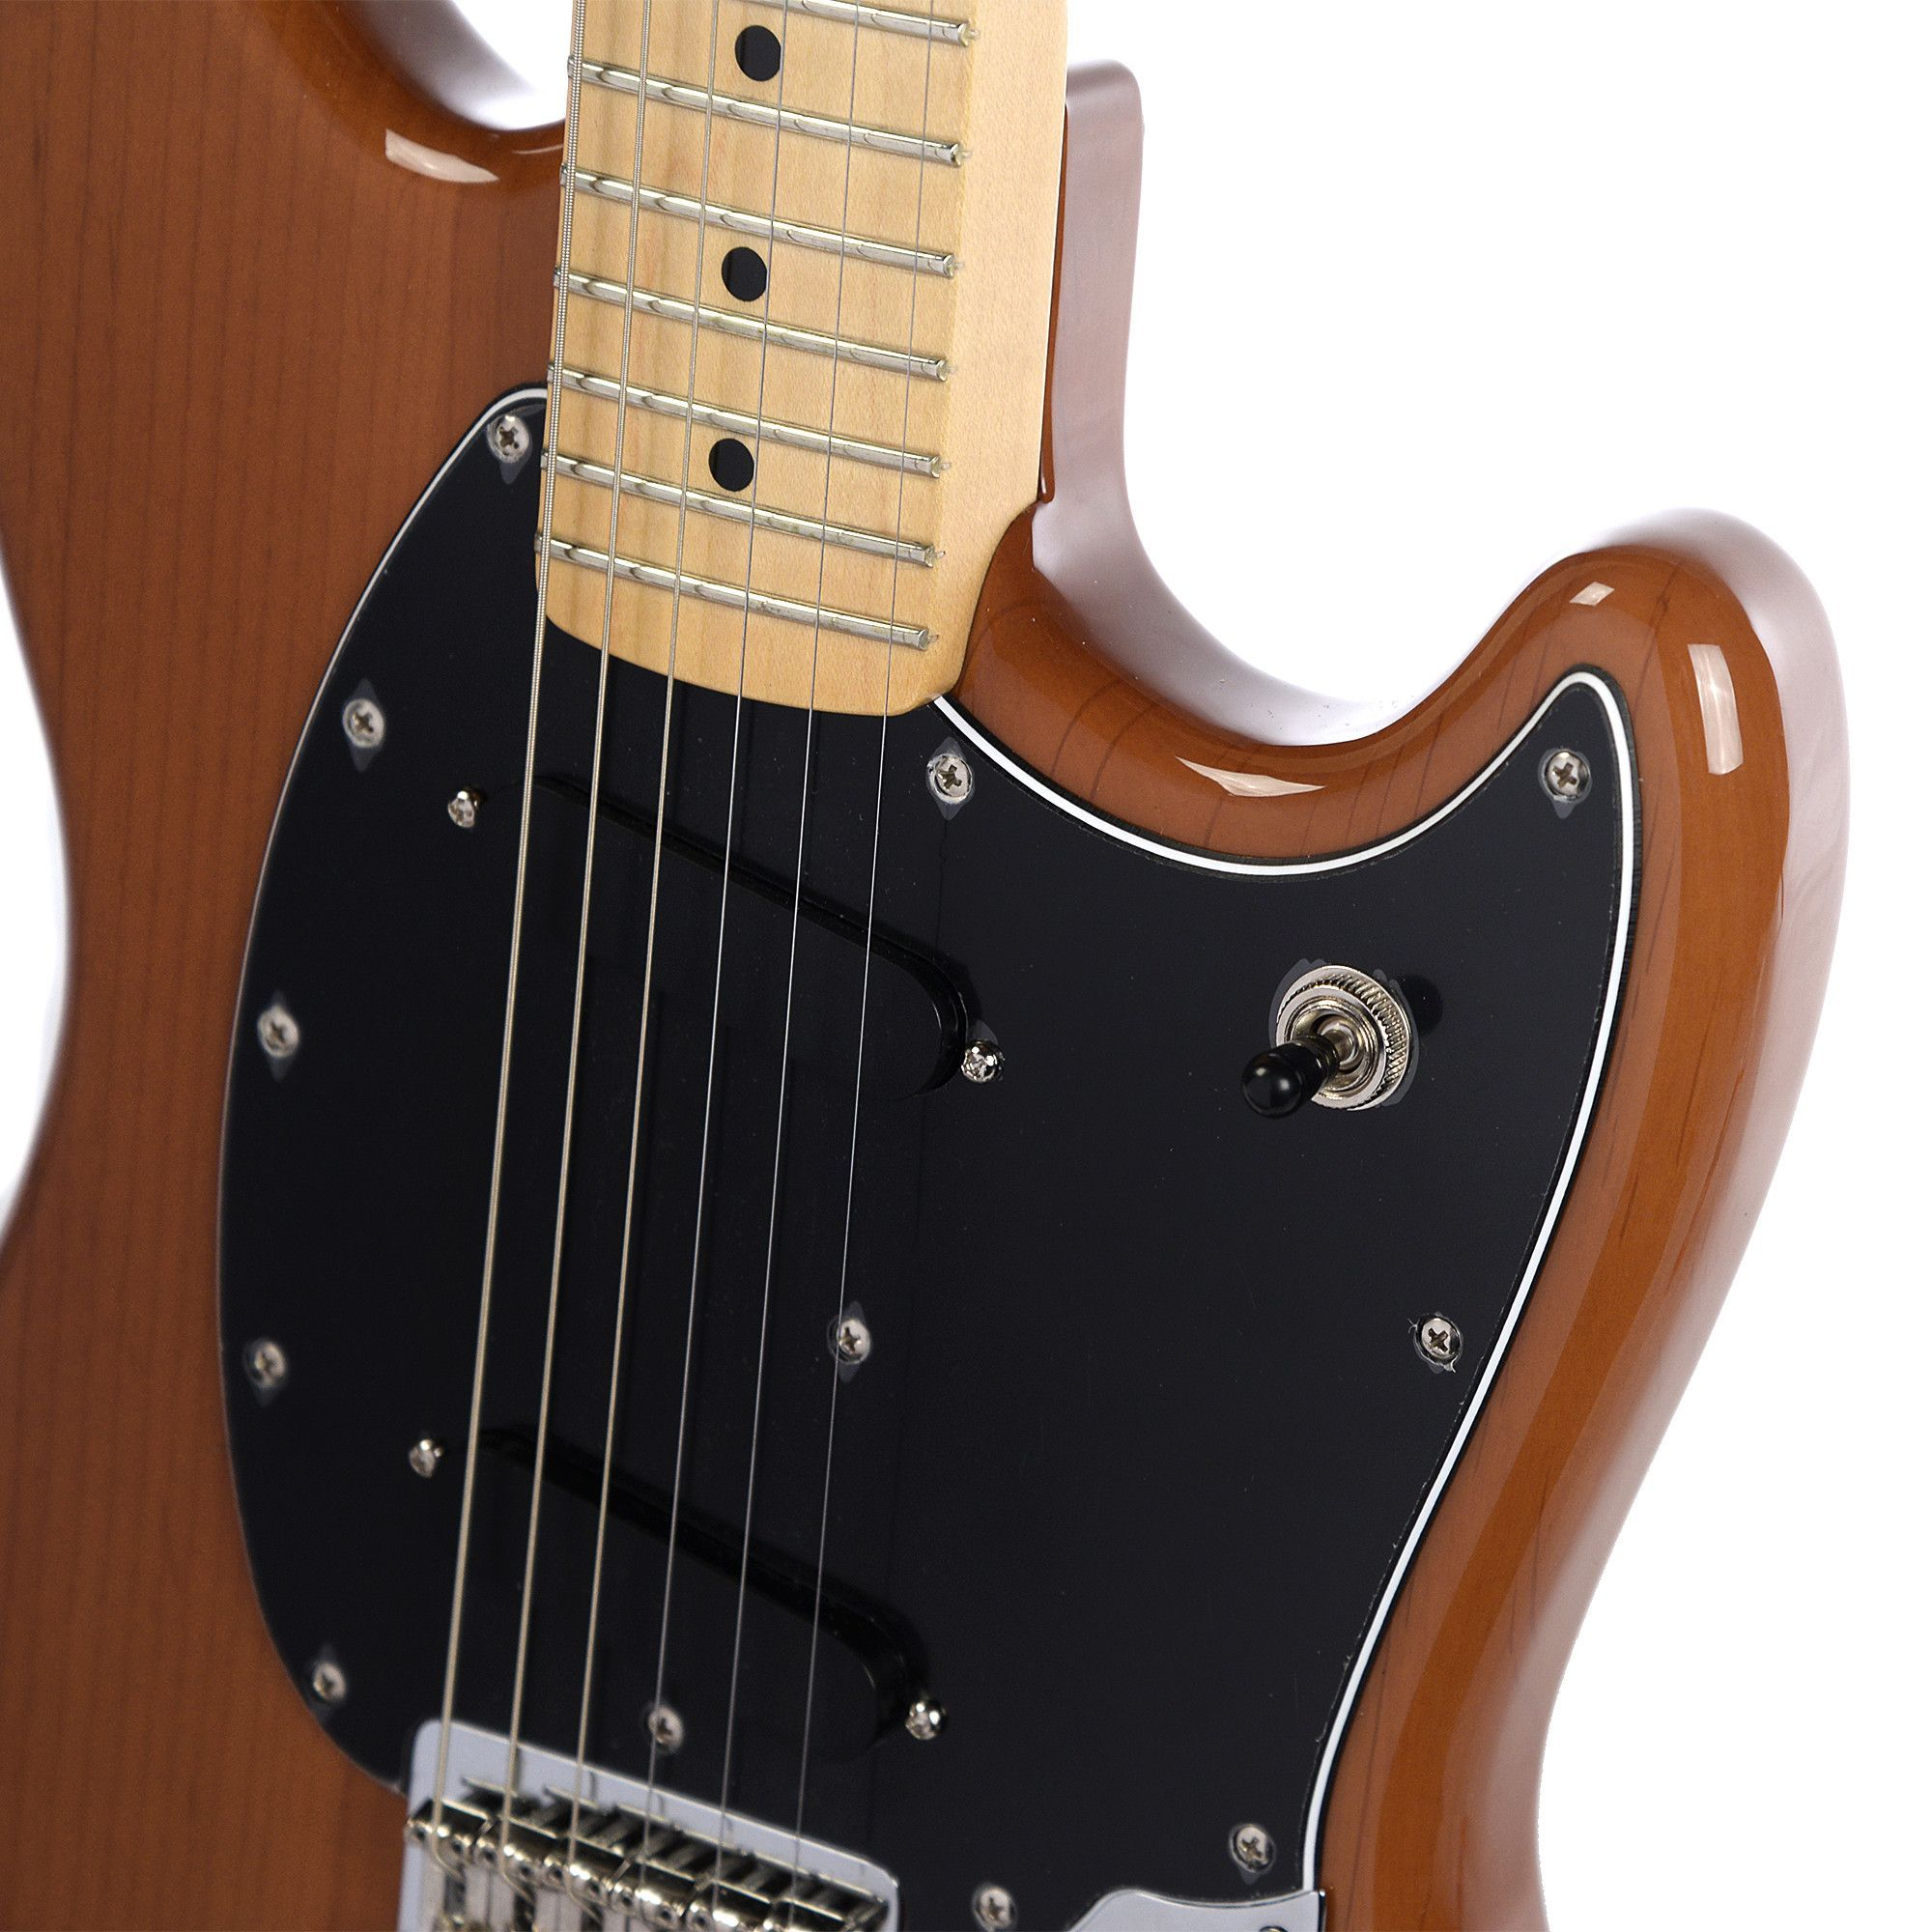 Fender Offset Series Mustang MN Faded Mocha FSR Limited Edition (CME Exclusive) Pre-